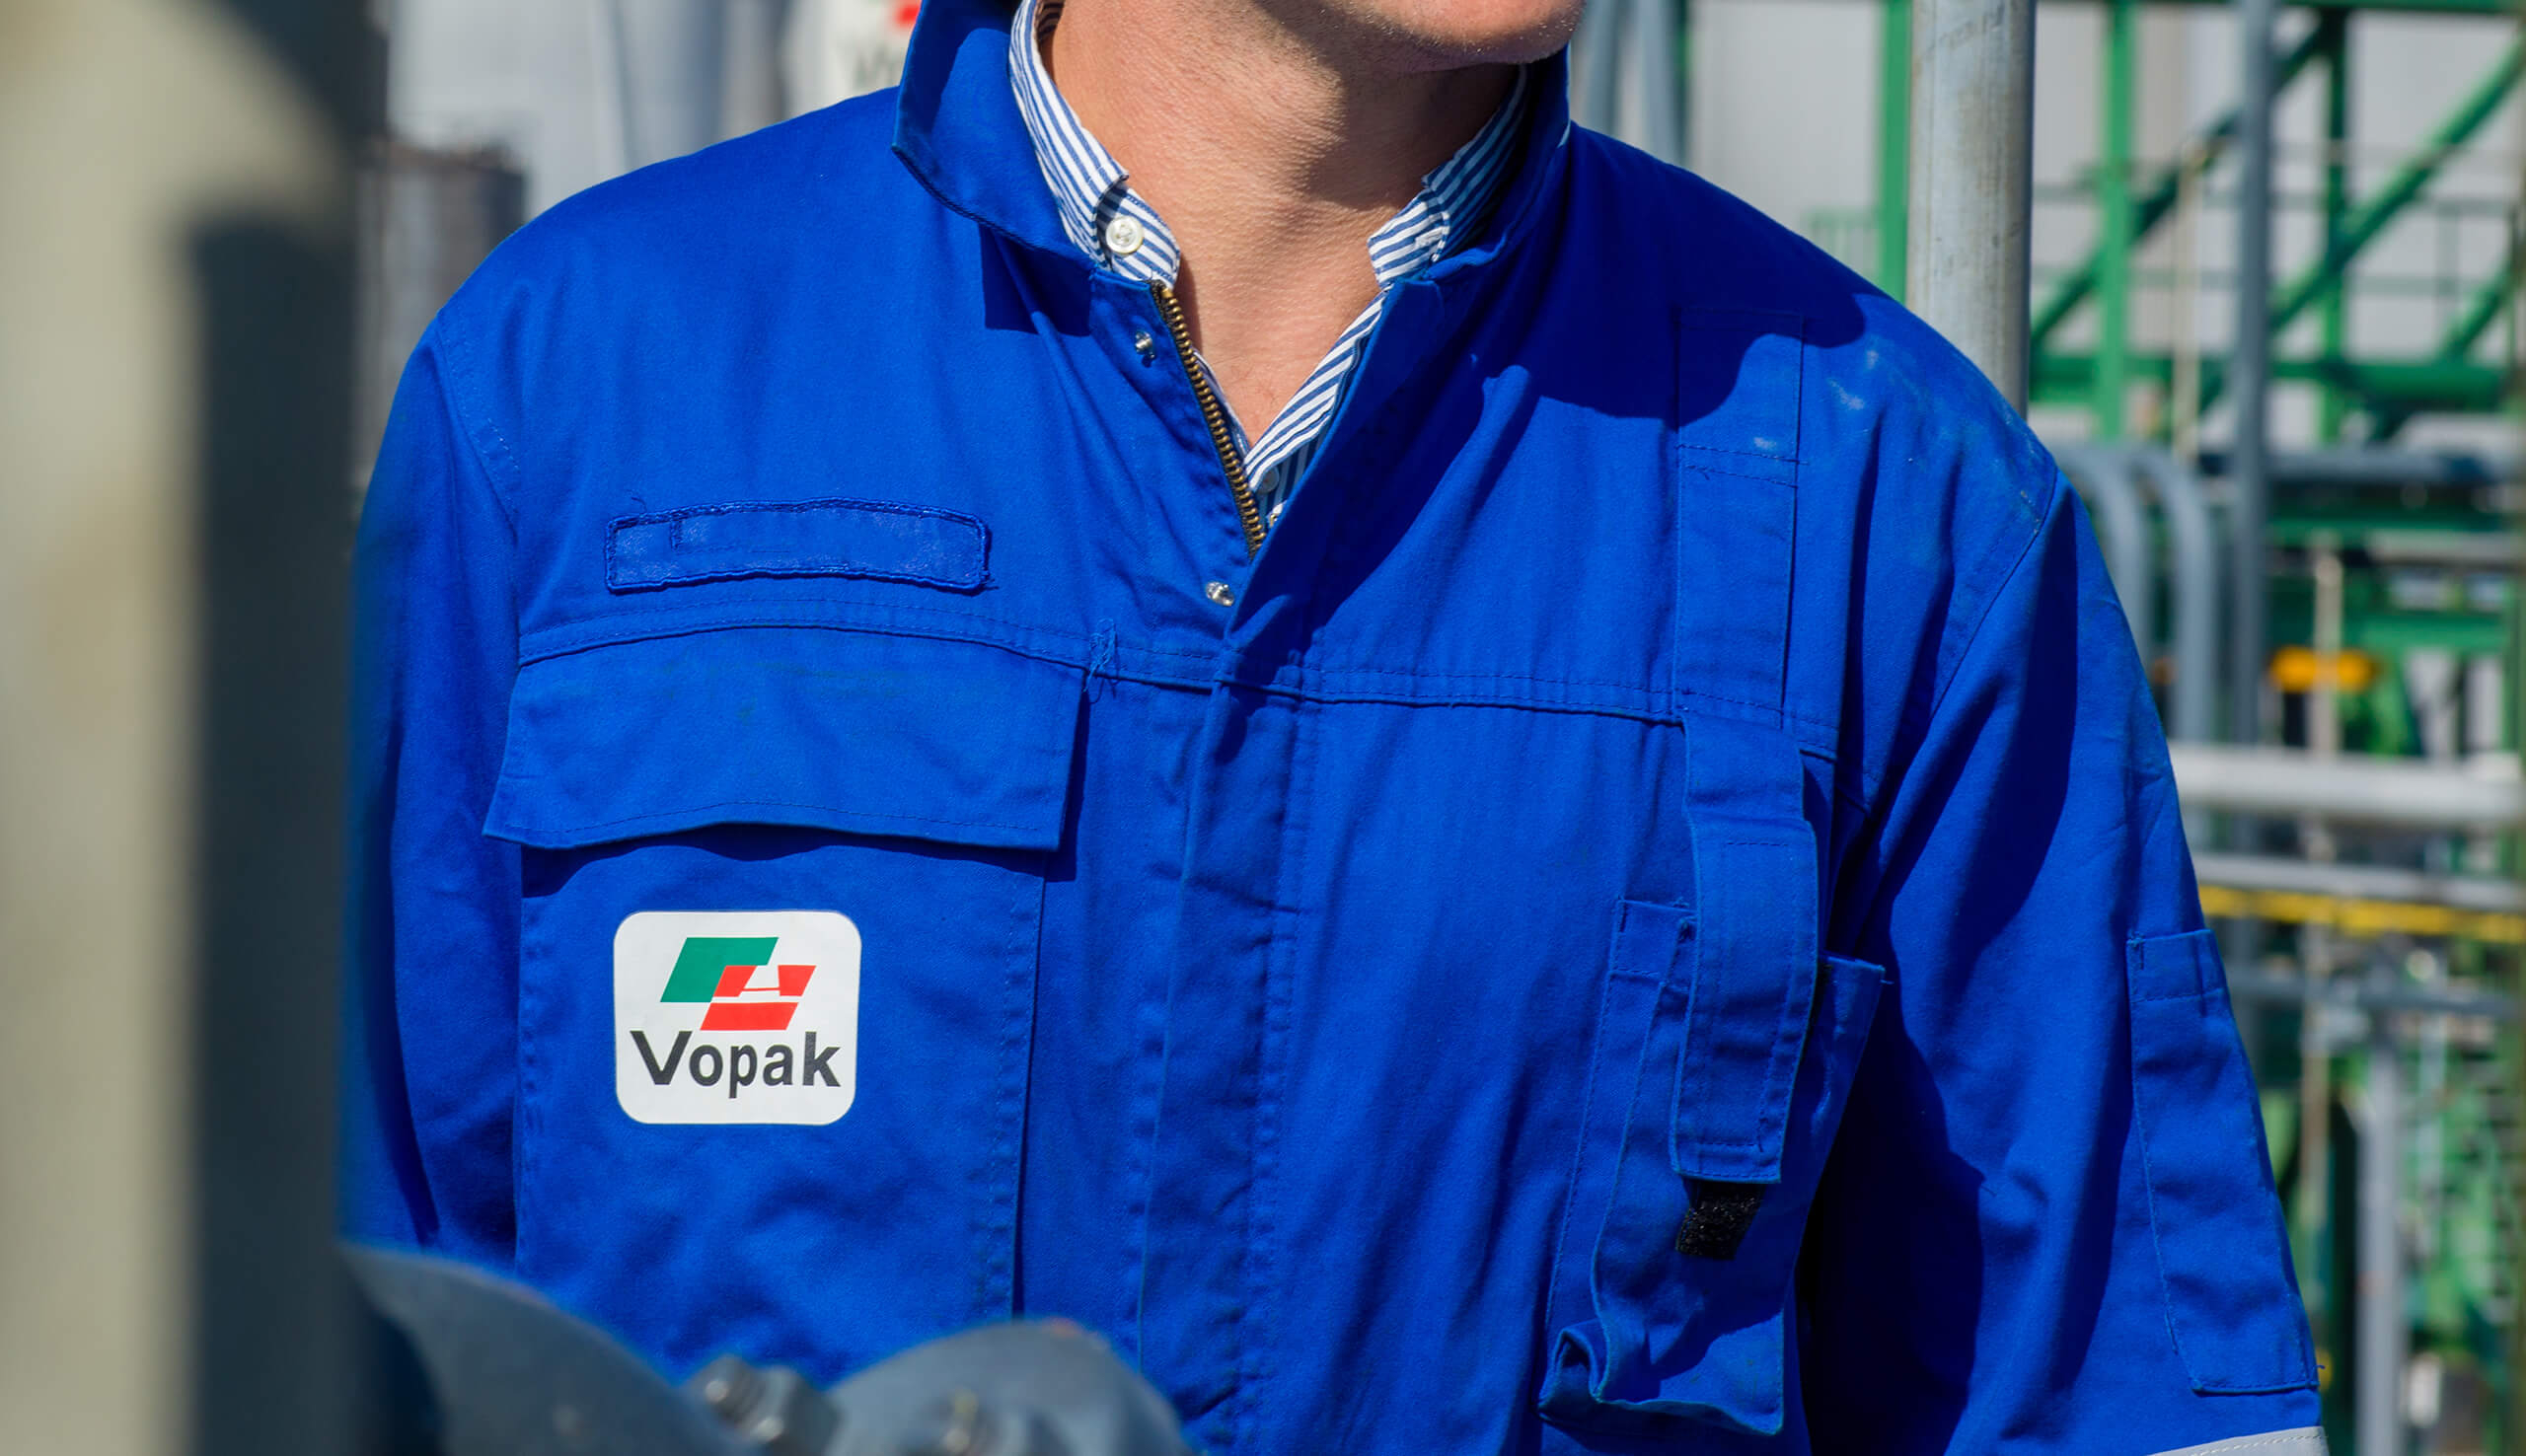 Vopak appoints TWTG as preferred supplier